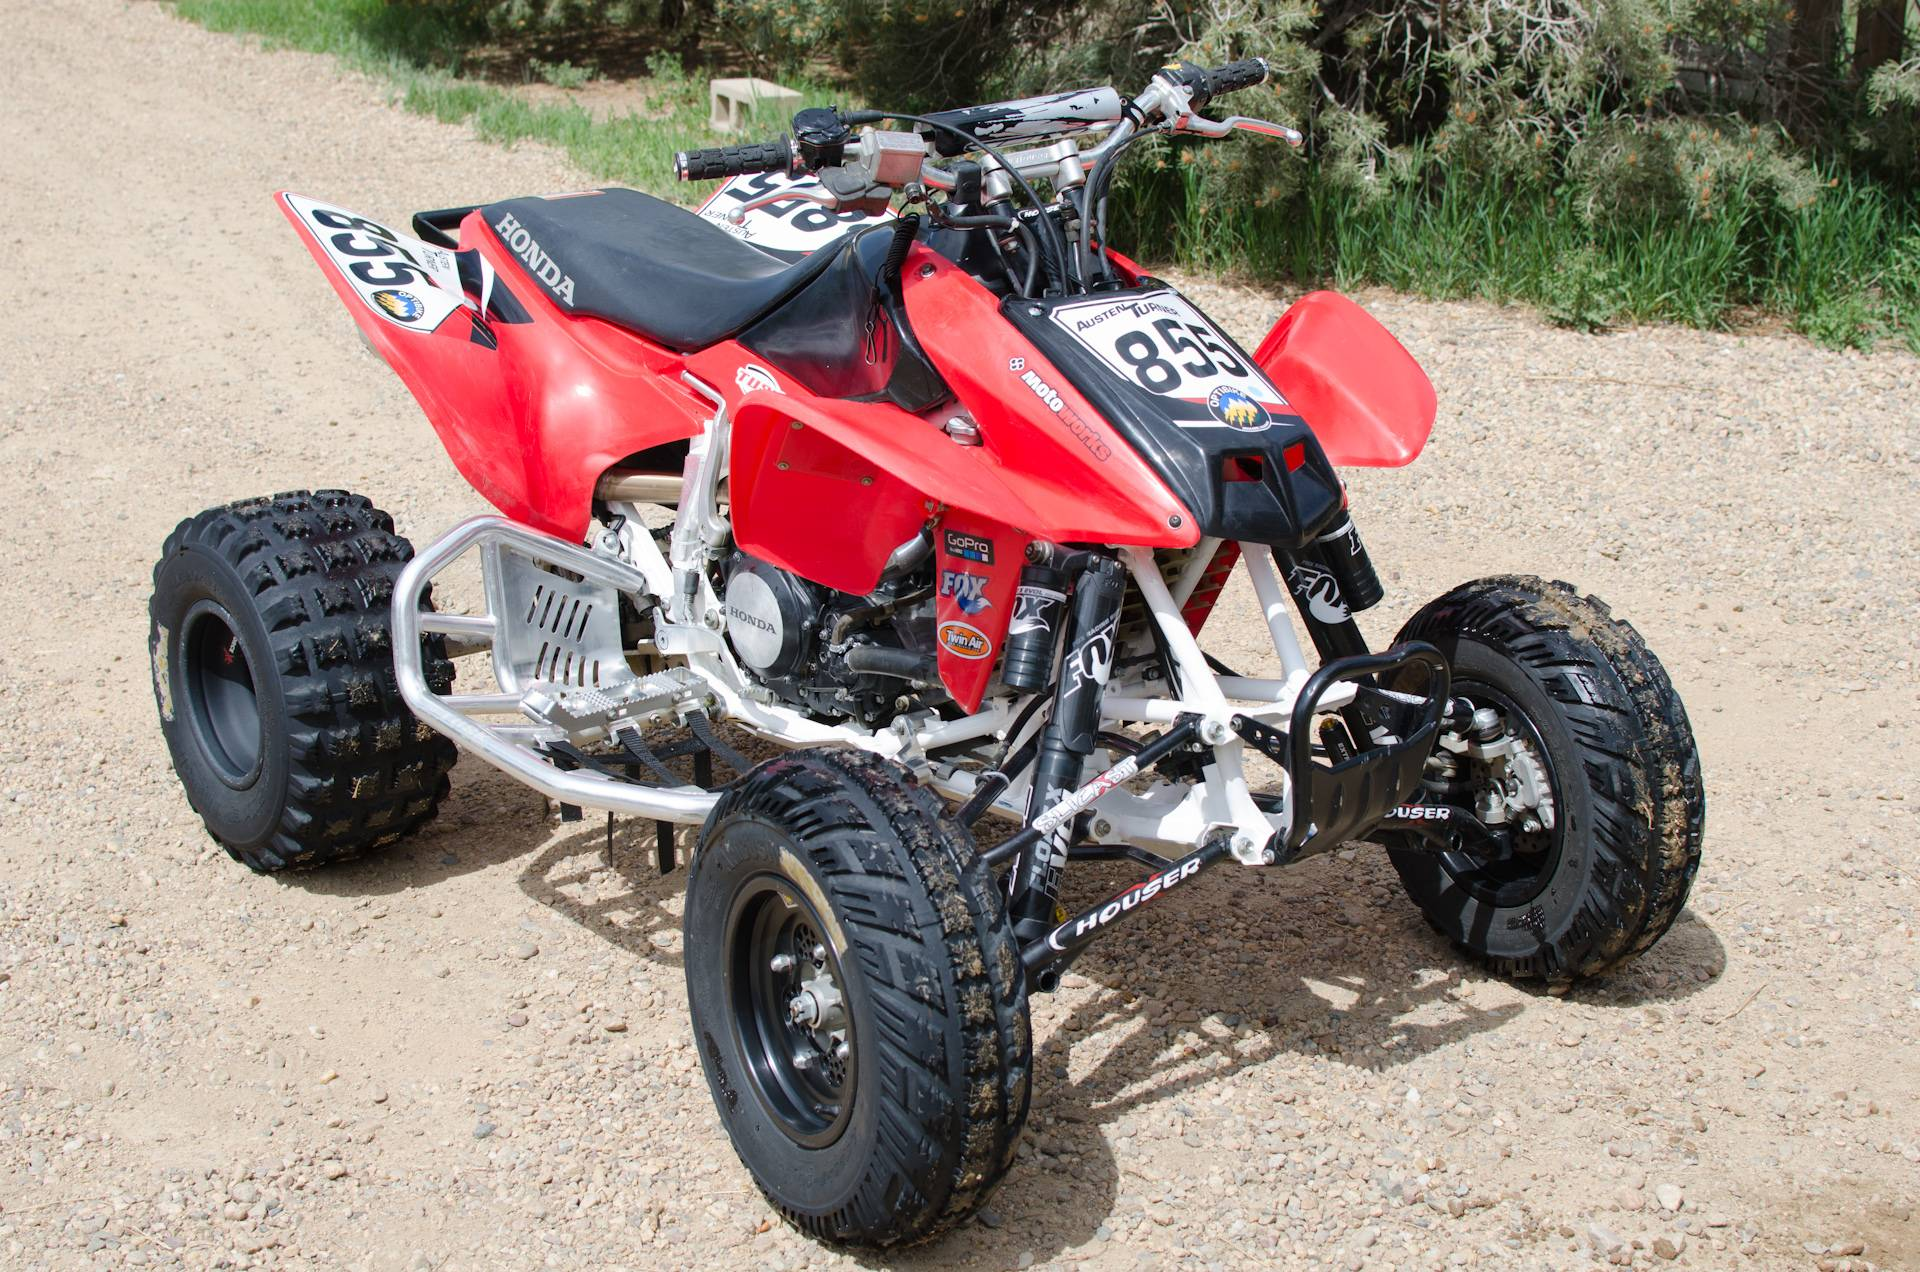 Honda TRX450R atv quad offroad motorbike bike dirtbike hd wallpaper 1920x1272